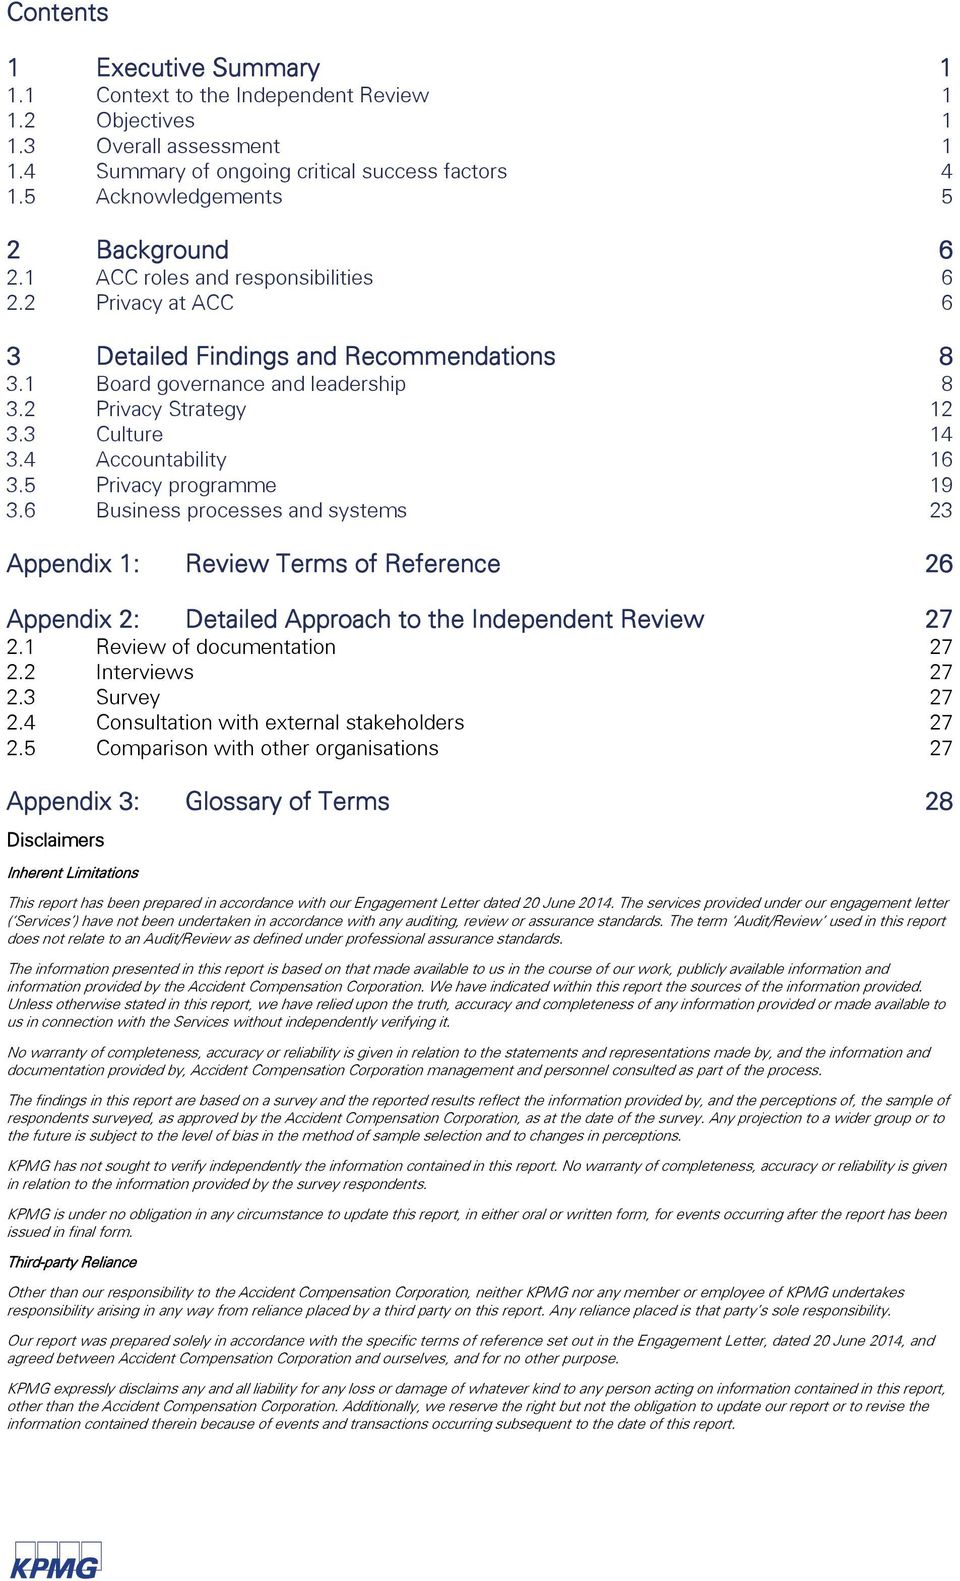 3 Culture 14 3.4 Accountability 16 3.5 Privacy programme 19 3.6 Business processes and systems 23 Appendix 1: Review Terms of Reference 26 Appendix 2: Detailed Approach to the Independent Review 27 2.